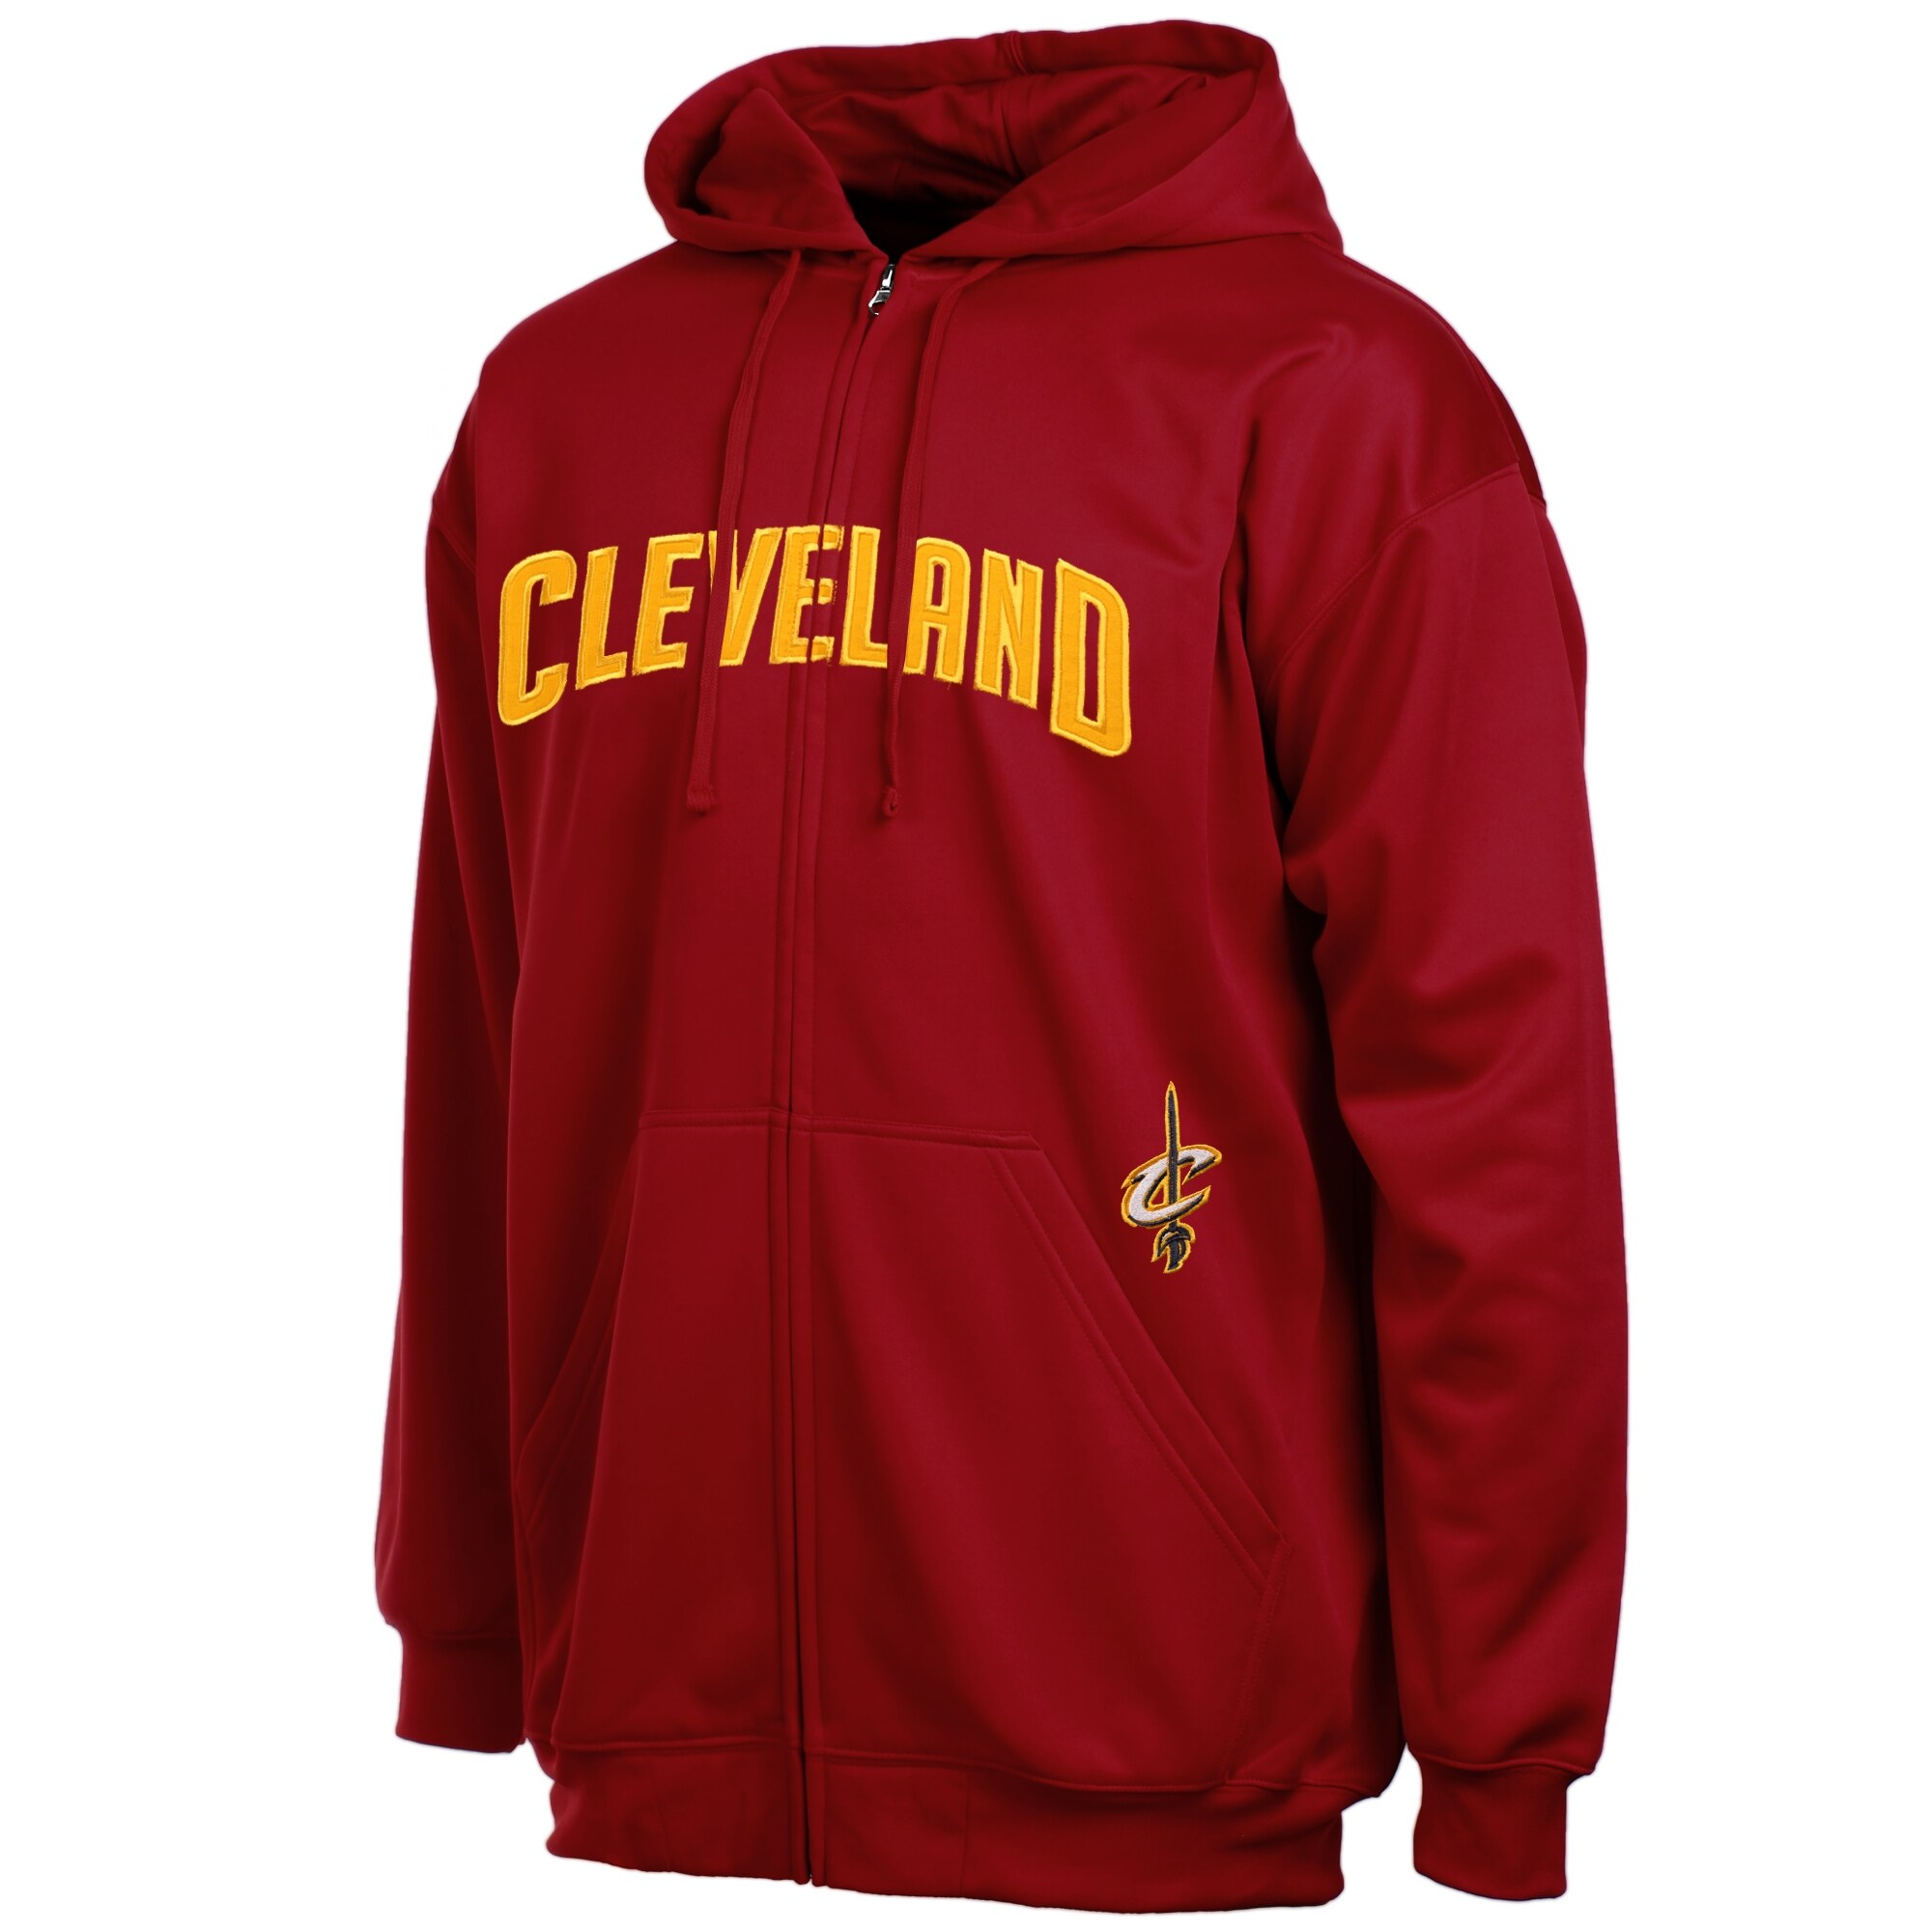 Cleveland Cavaliers Majestic Big & Tall Delay Full-Zip Hoodie - Wine